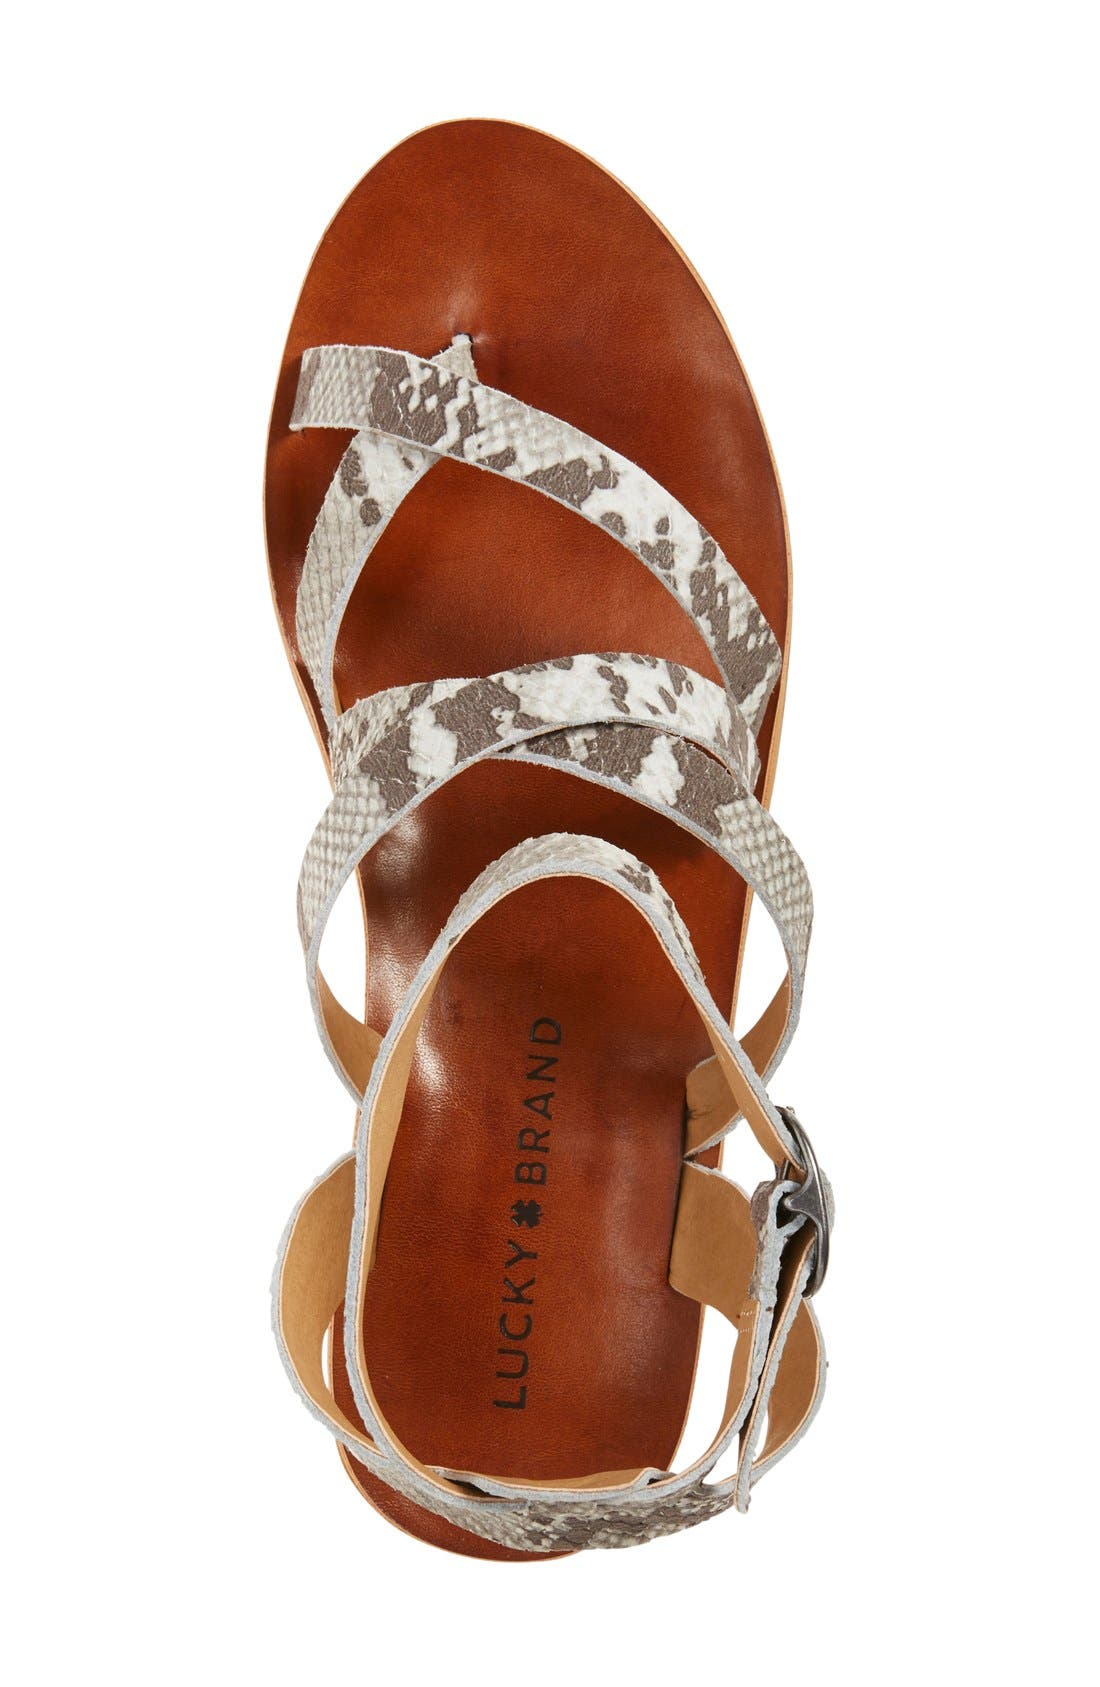 'Honeyy' Platform Sandal,                             Alternate thumbnail 4, color,                             020